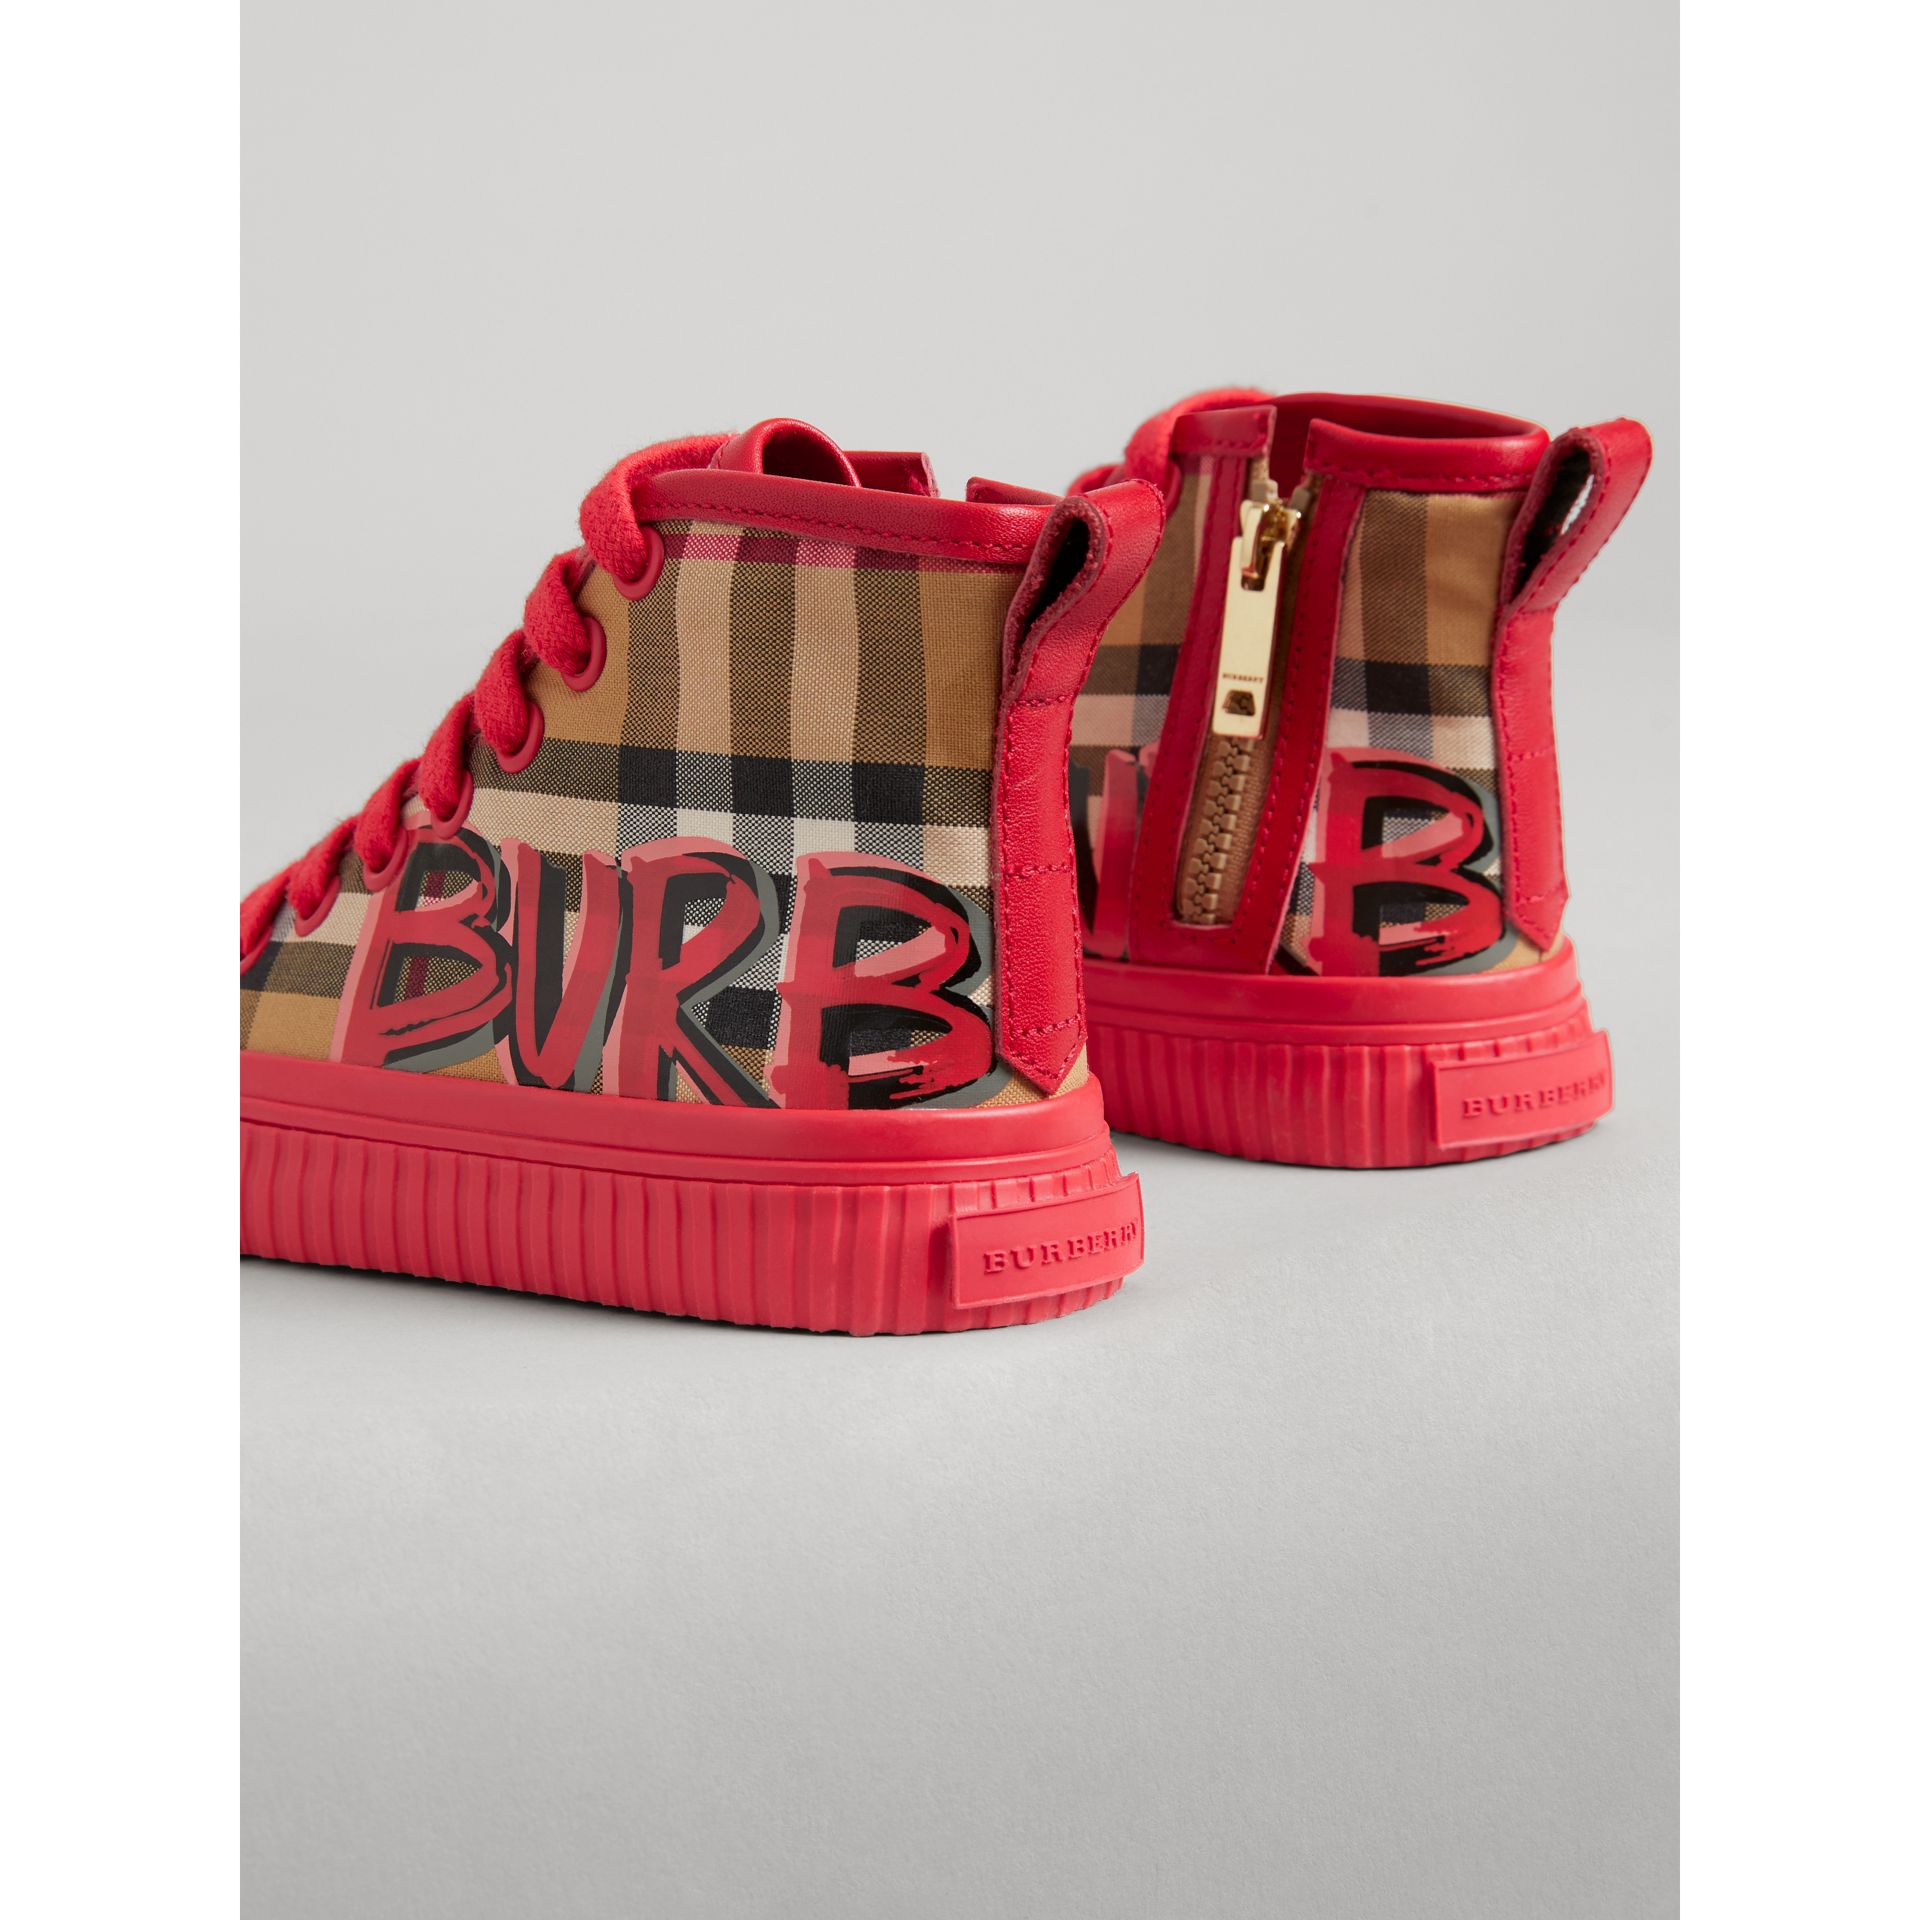 Graffiti Vintage Check High-top Sneakers in Bright Red | Burberry - gallery image 2